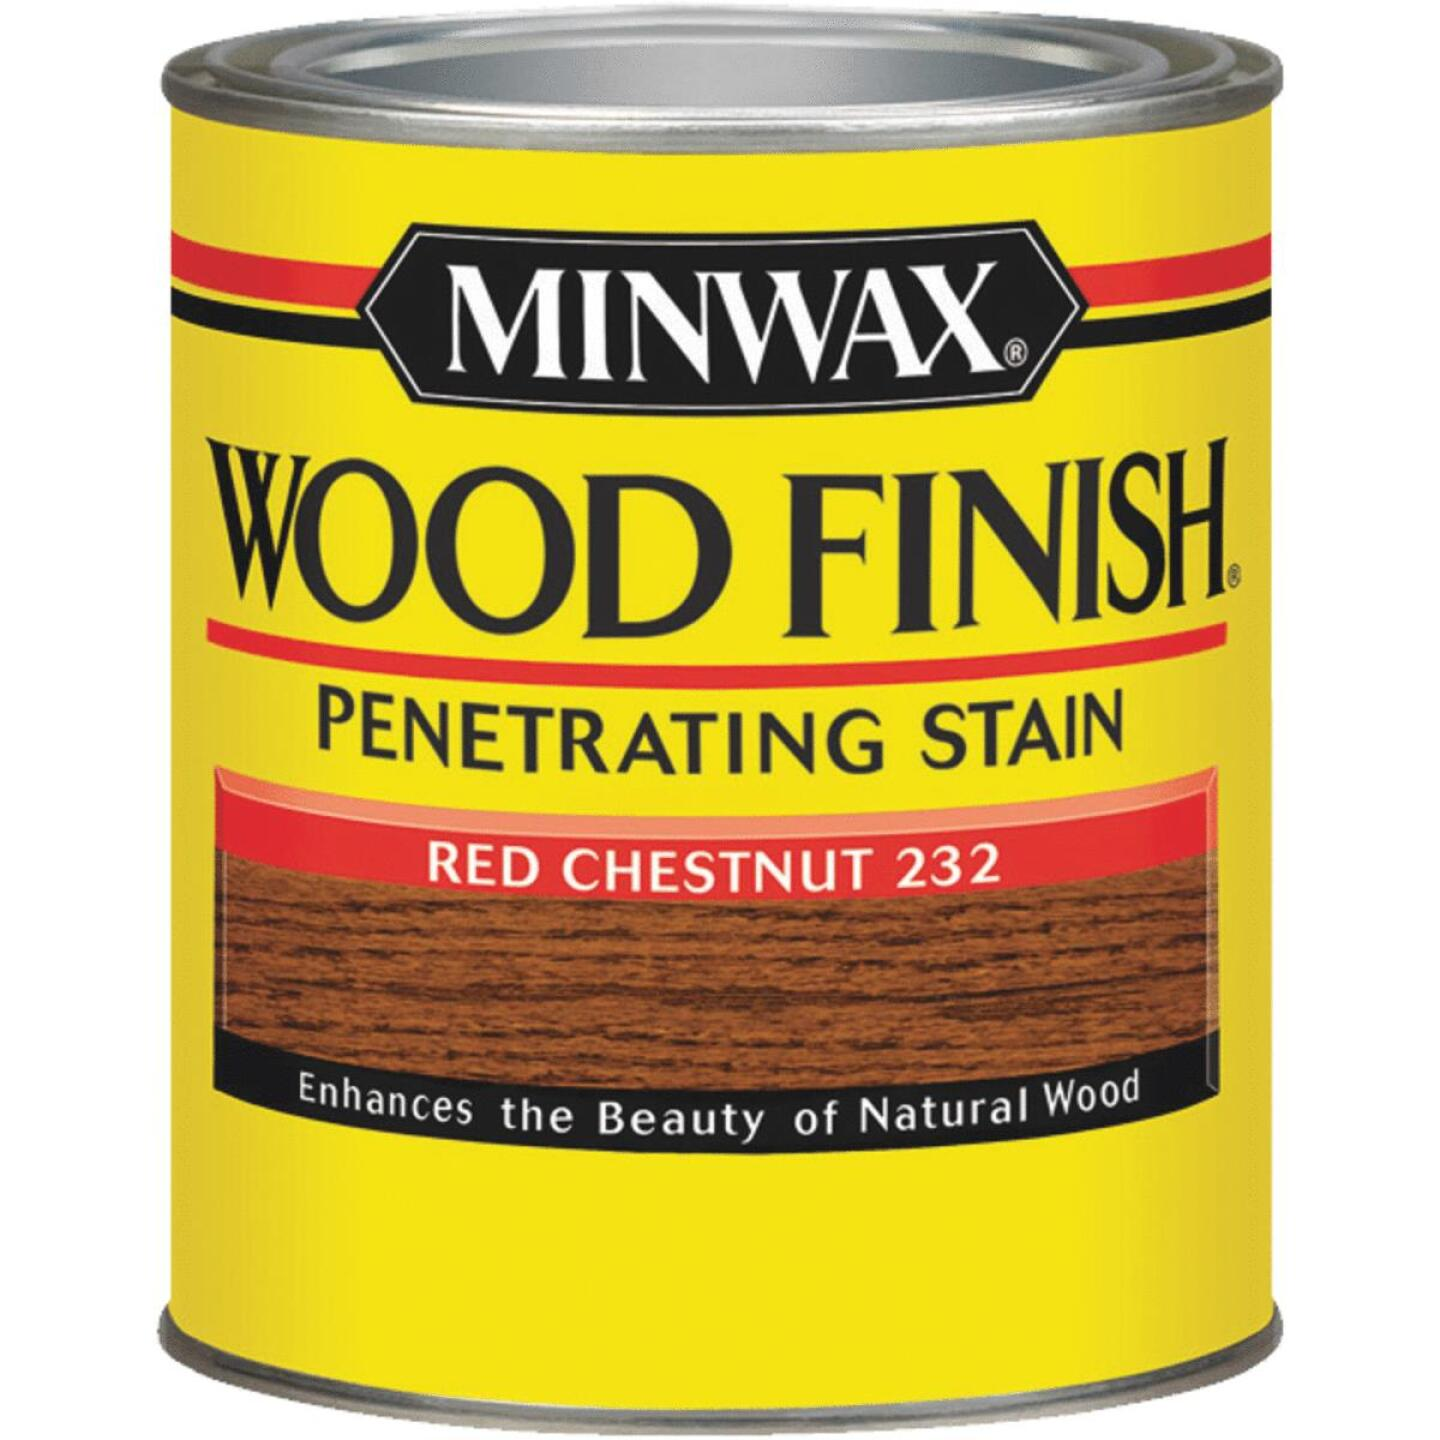 Minwax Wood Finish Penetrating Stain, Red Chestnut, 1/2 Pt. Image 1